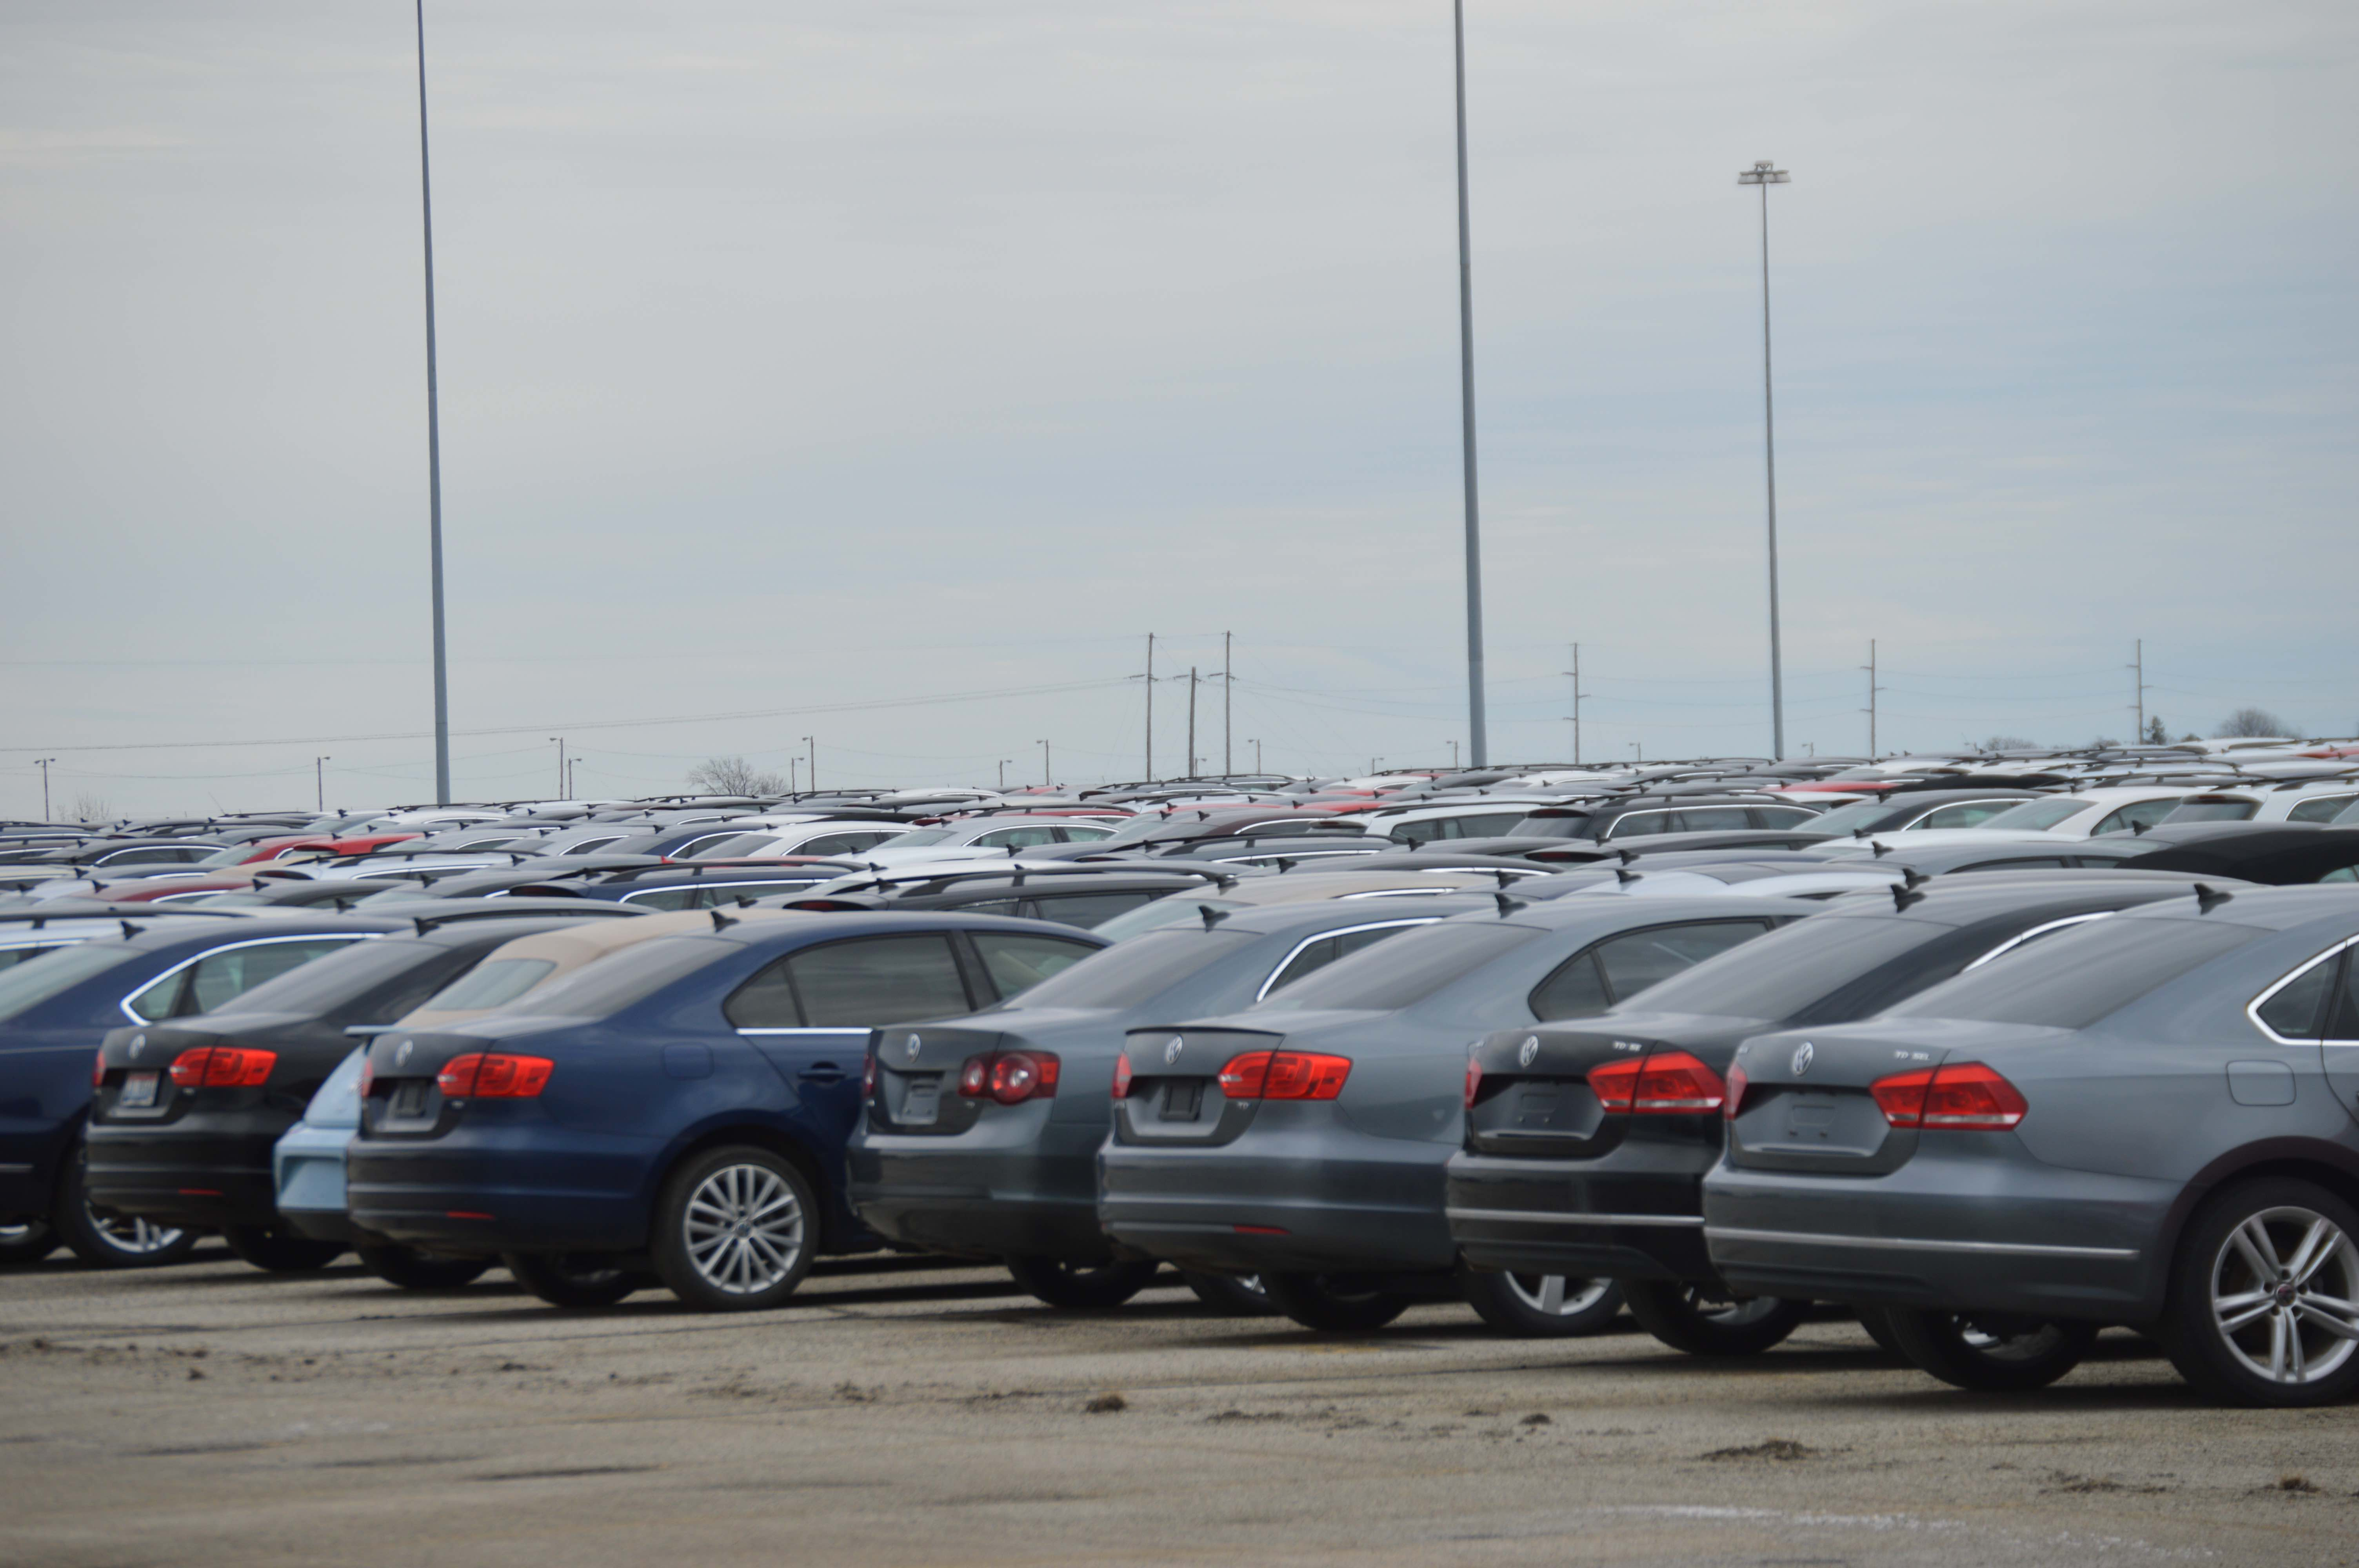 The Diesel VWs are tightly lined up as more vehicles arrive daily